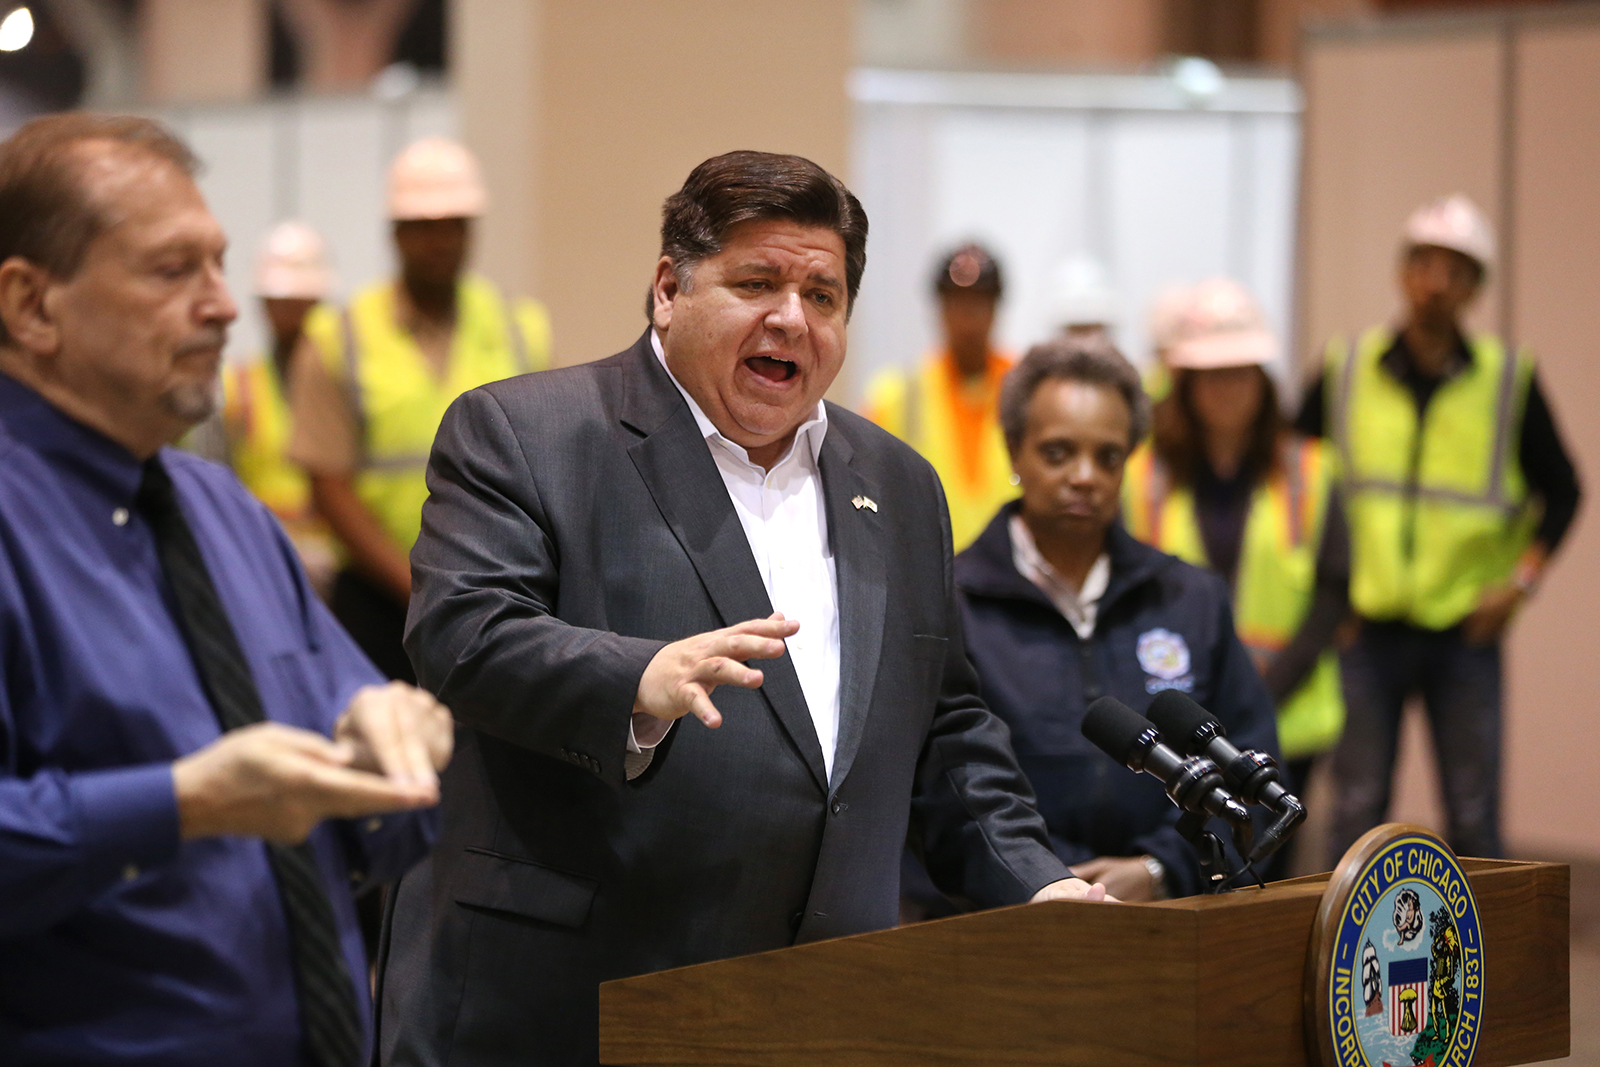 Illinois Gov. J.B. Pritzker speaks during a press conference on April 3, in Chicago.